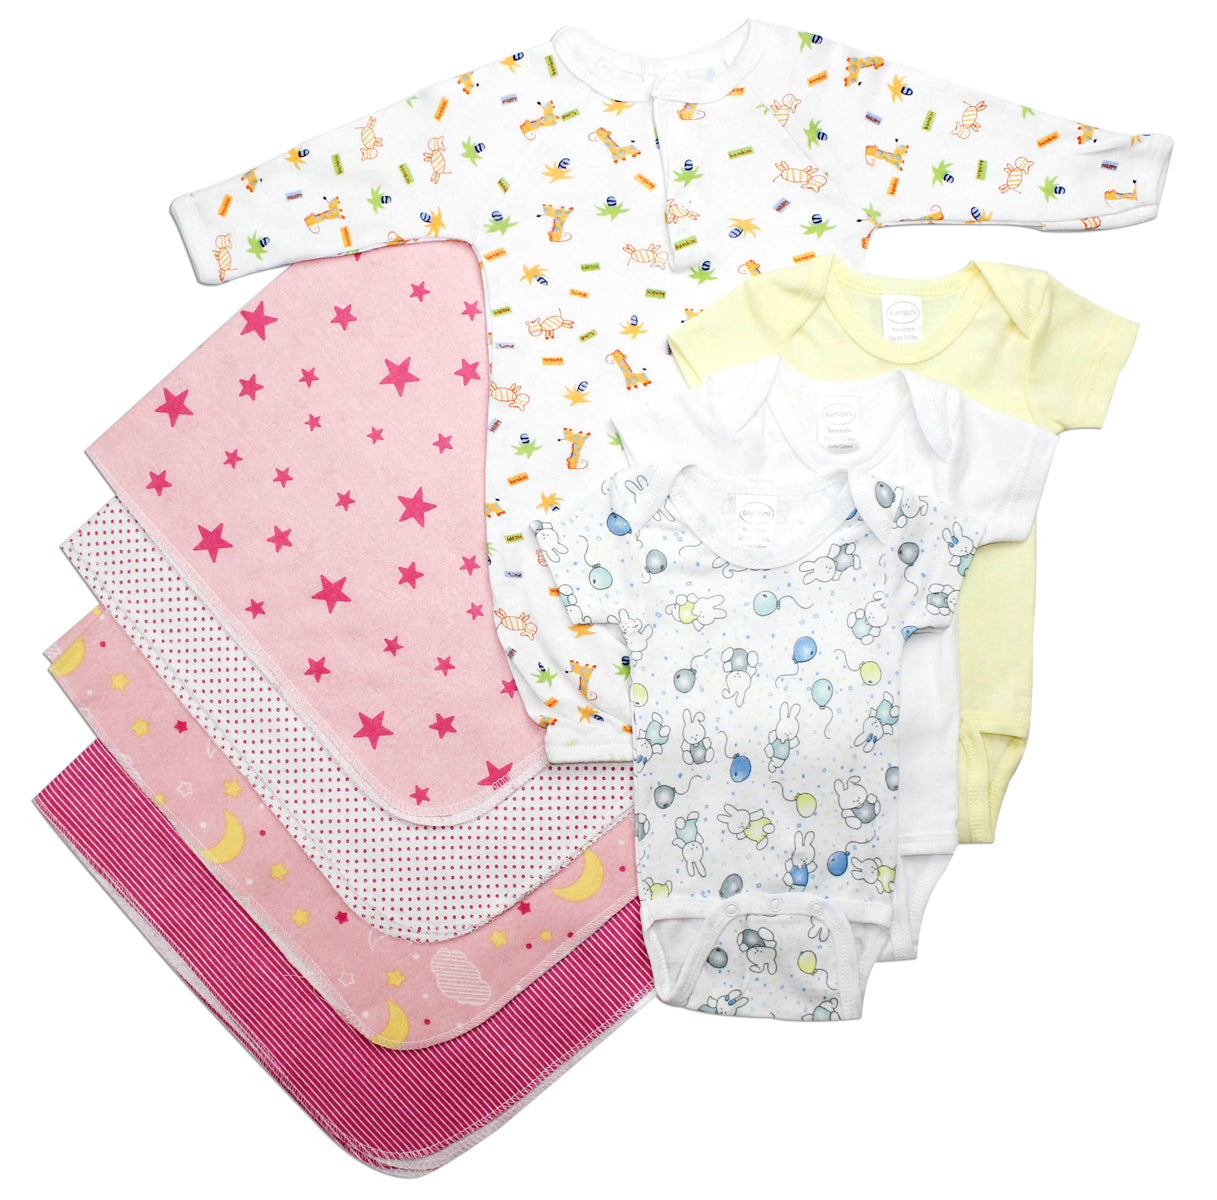 Bambini Newborn Baby Girls 8 Pc Layette Baby Shower Gift Set